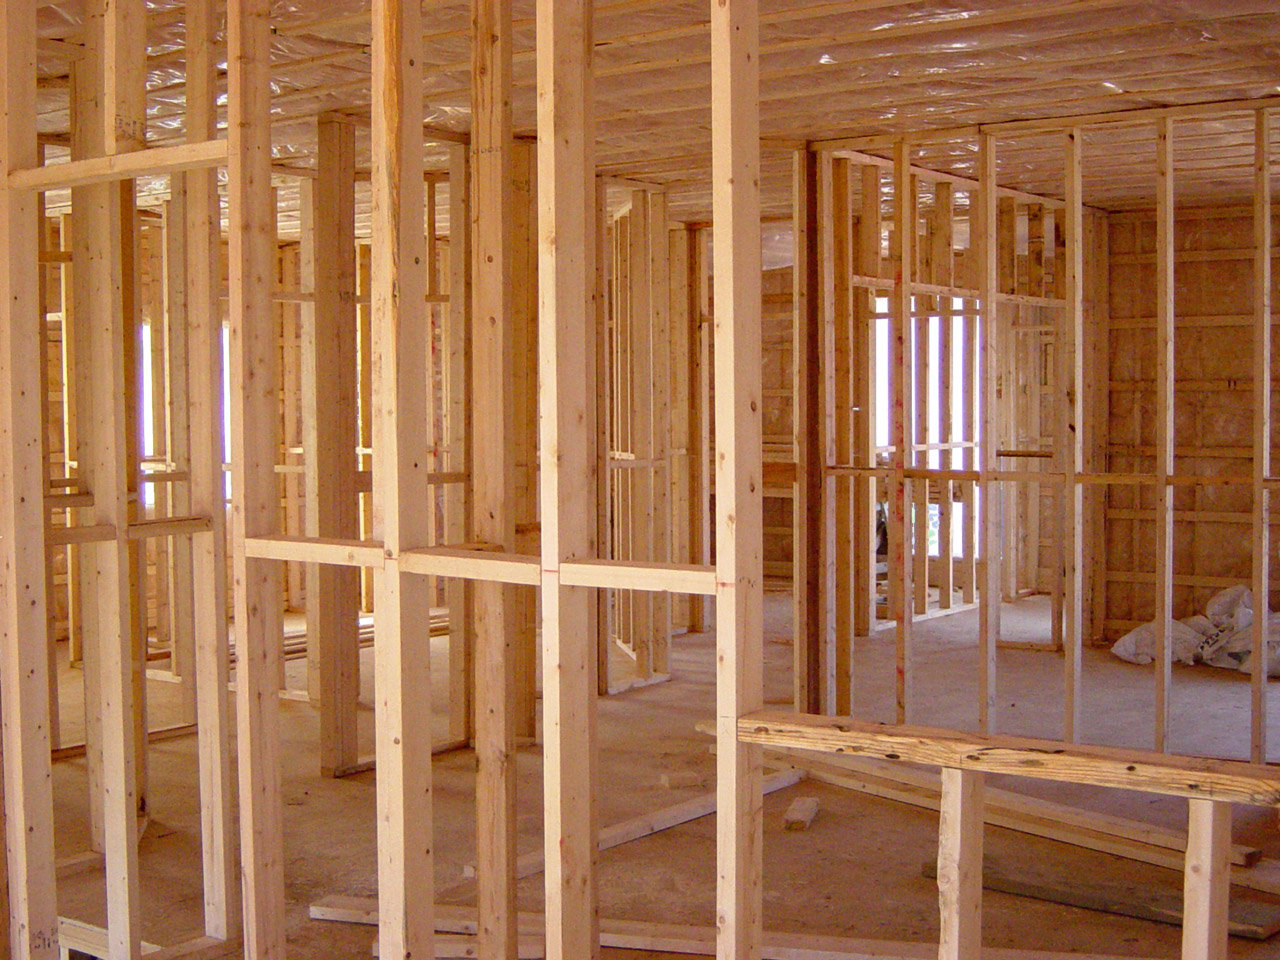 house-under-construction.jpg